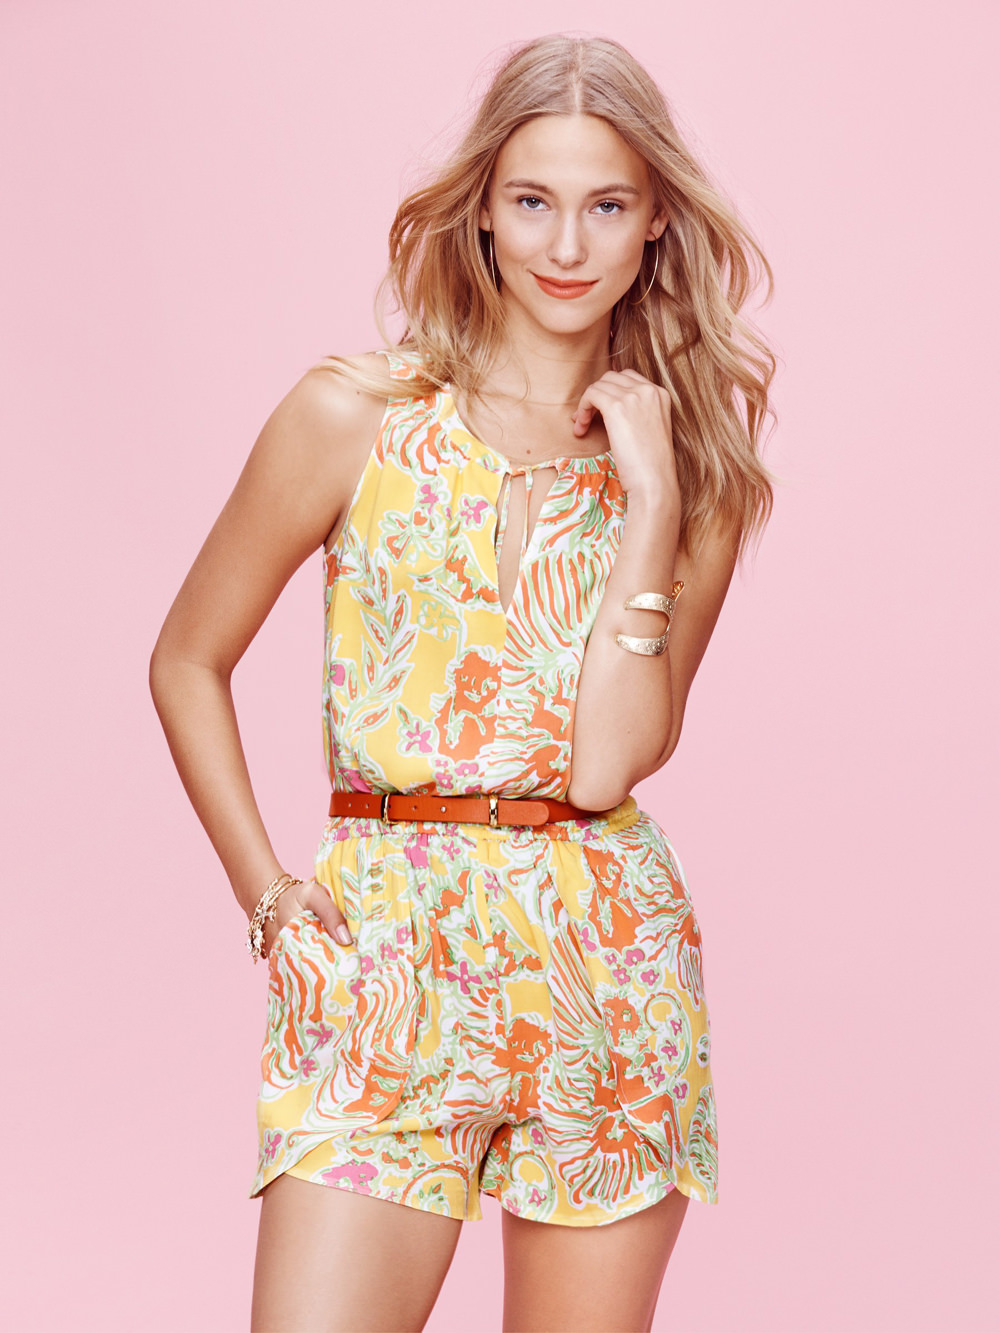 Lilly-Pulitzer-For-Target-Collection-Fashion-Tom-Lorenzo-Site-TLO (0)